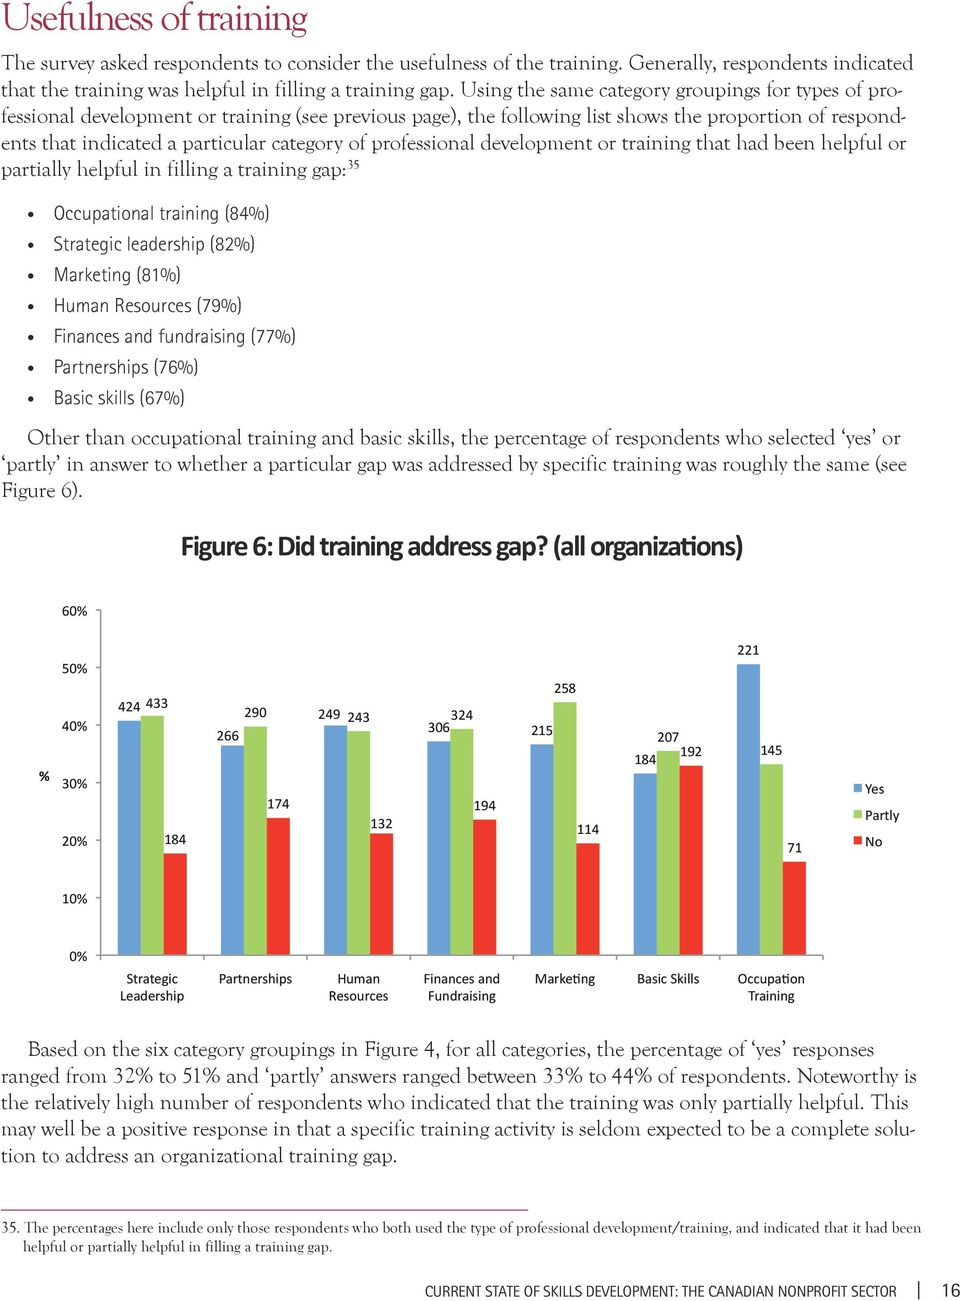 professional development or training that had been helpful or partially helpful in filling a training gap: 35 Occupational training (84%) Strategic leadership (82%) Marketing (81%) Human Resources